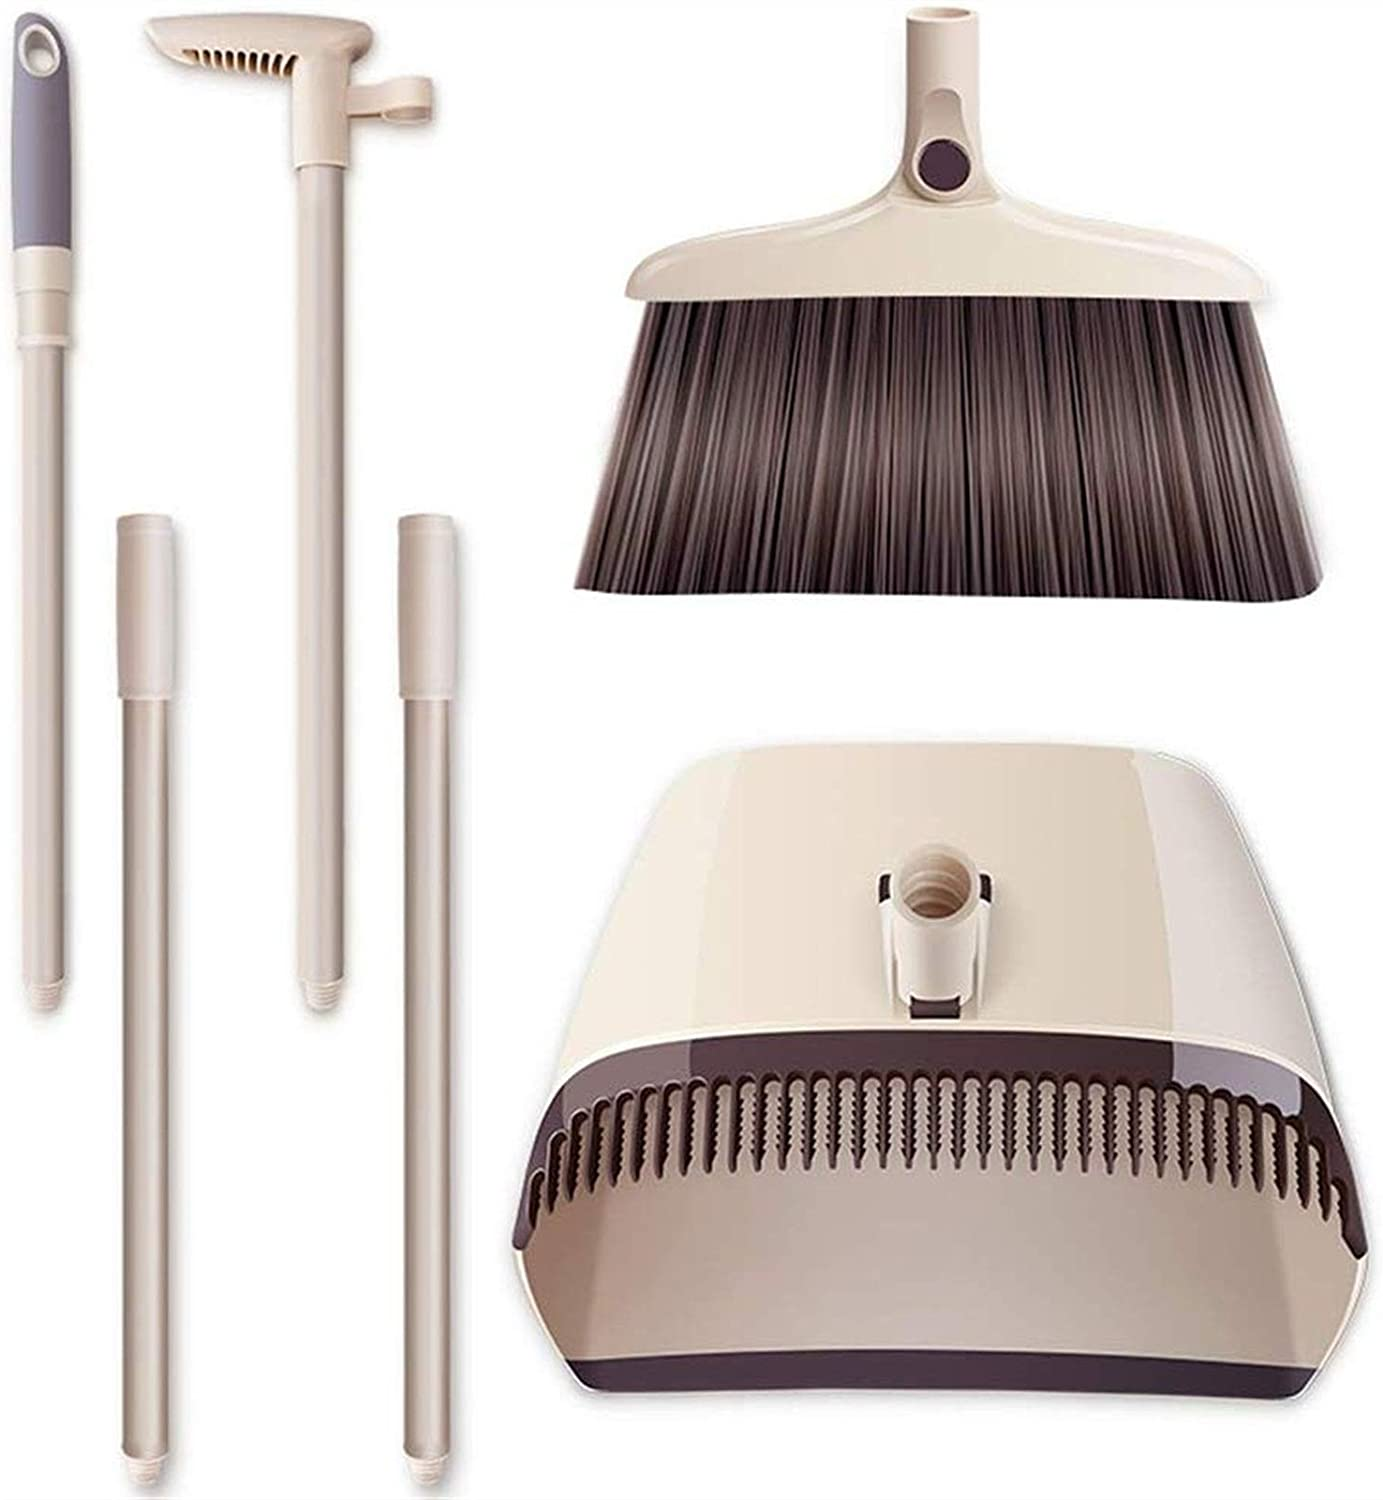 Luxury goods HIZLJJ Broom and Lobby Year-end annual account Dustpan Upright Set Sweep Grips Standing